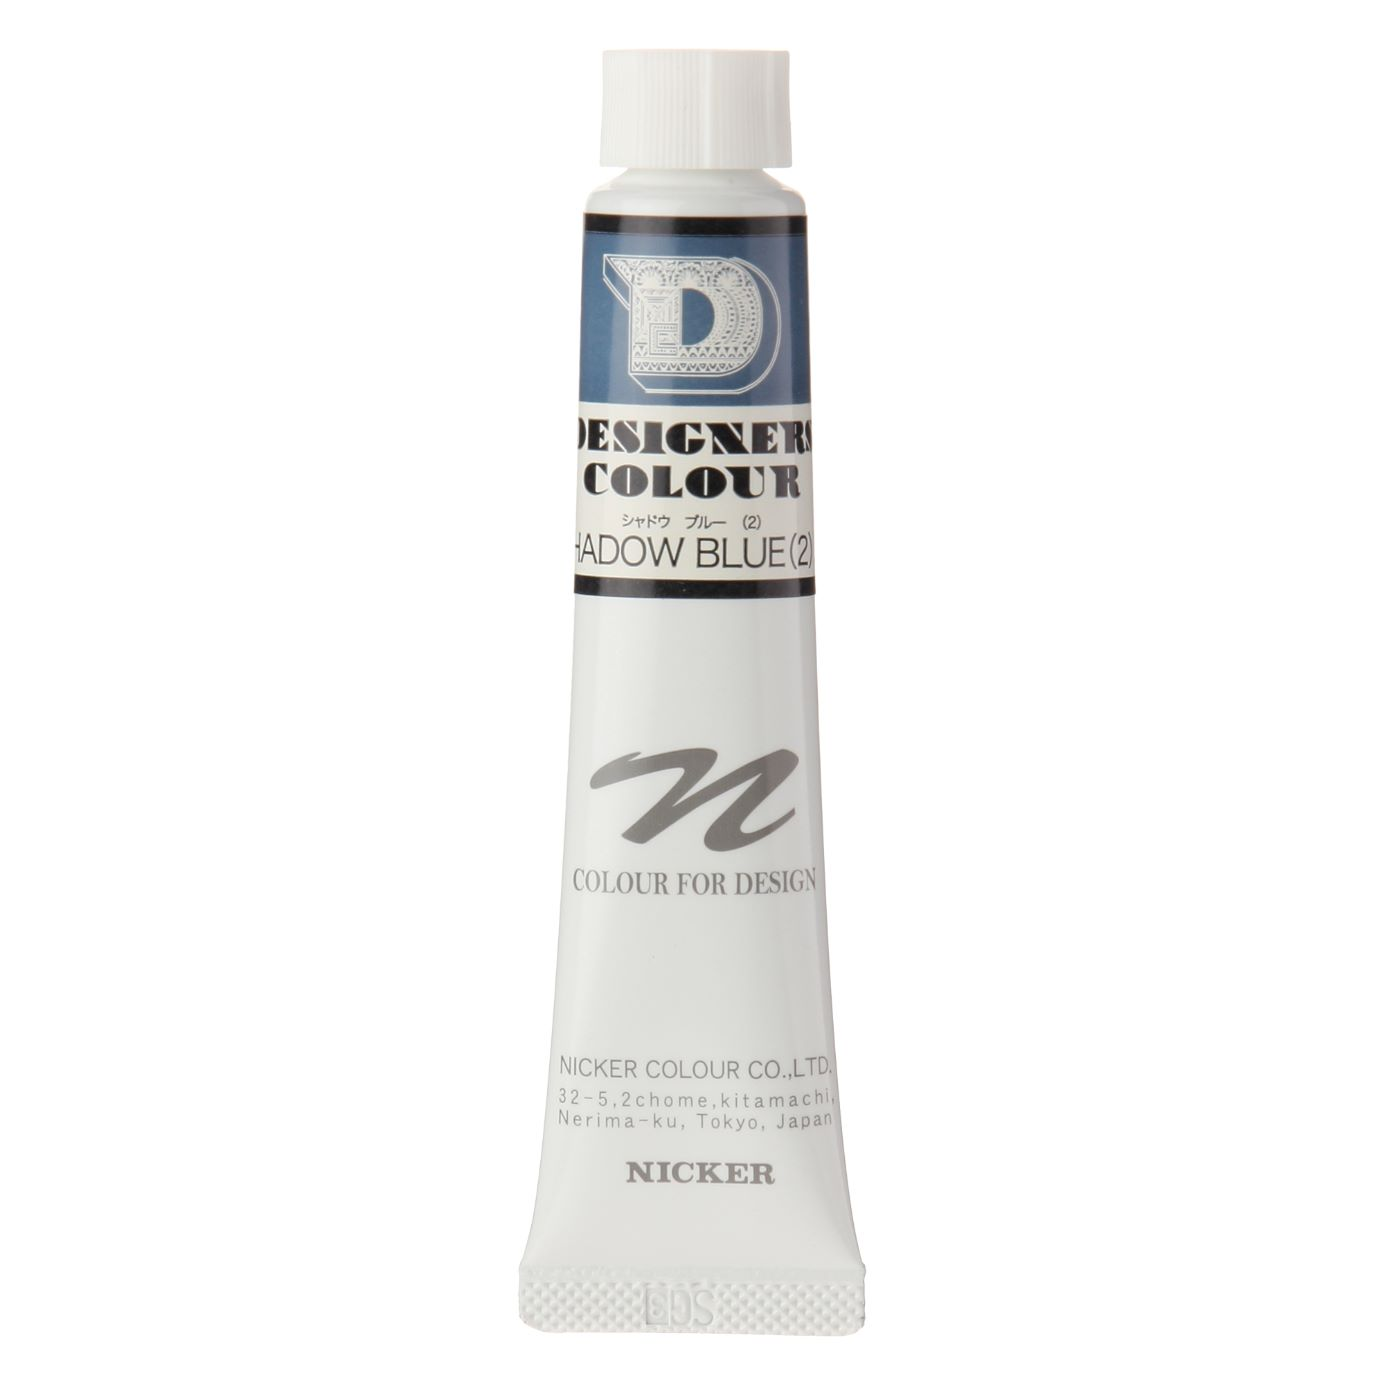 DESIGNERS COLOUR 20ml 582 SHADOW BLUE(2)